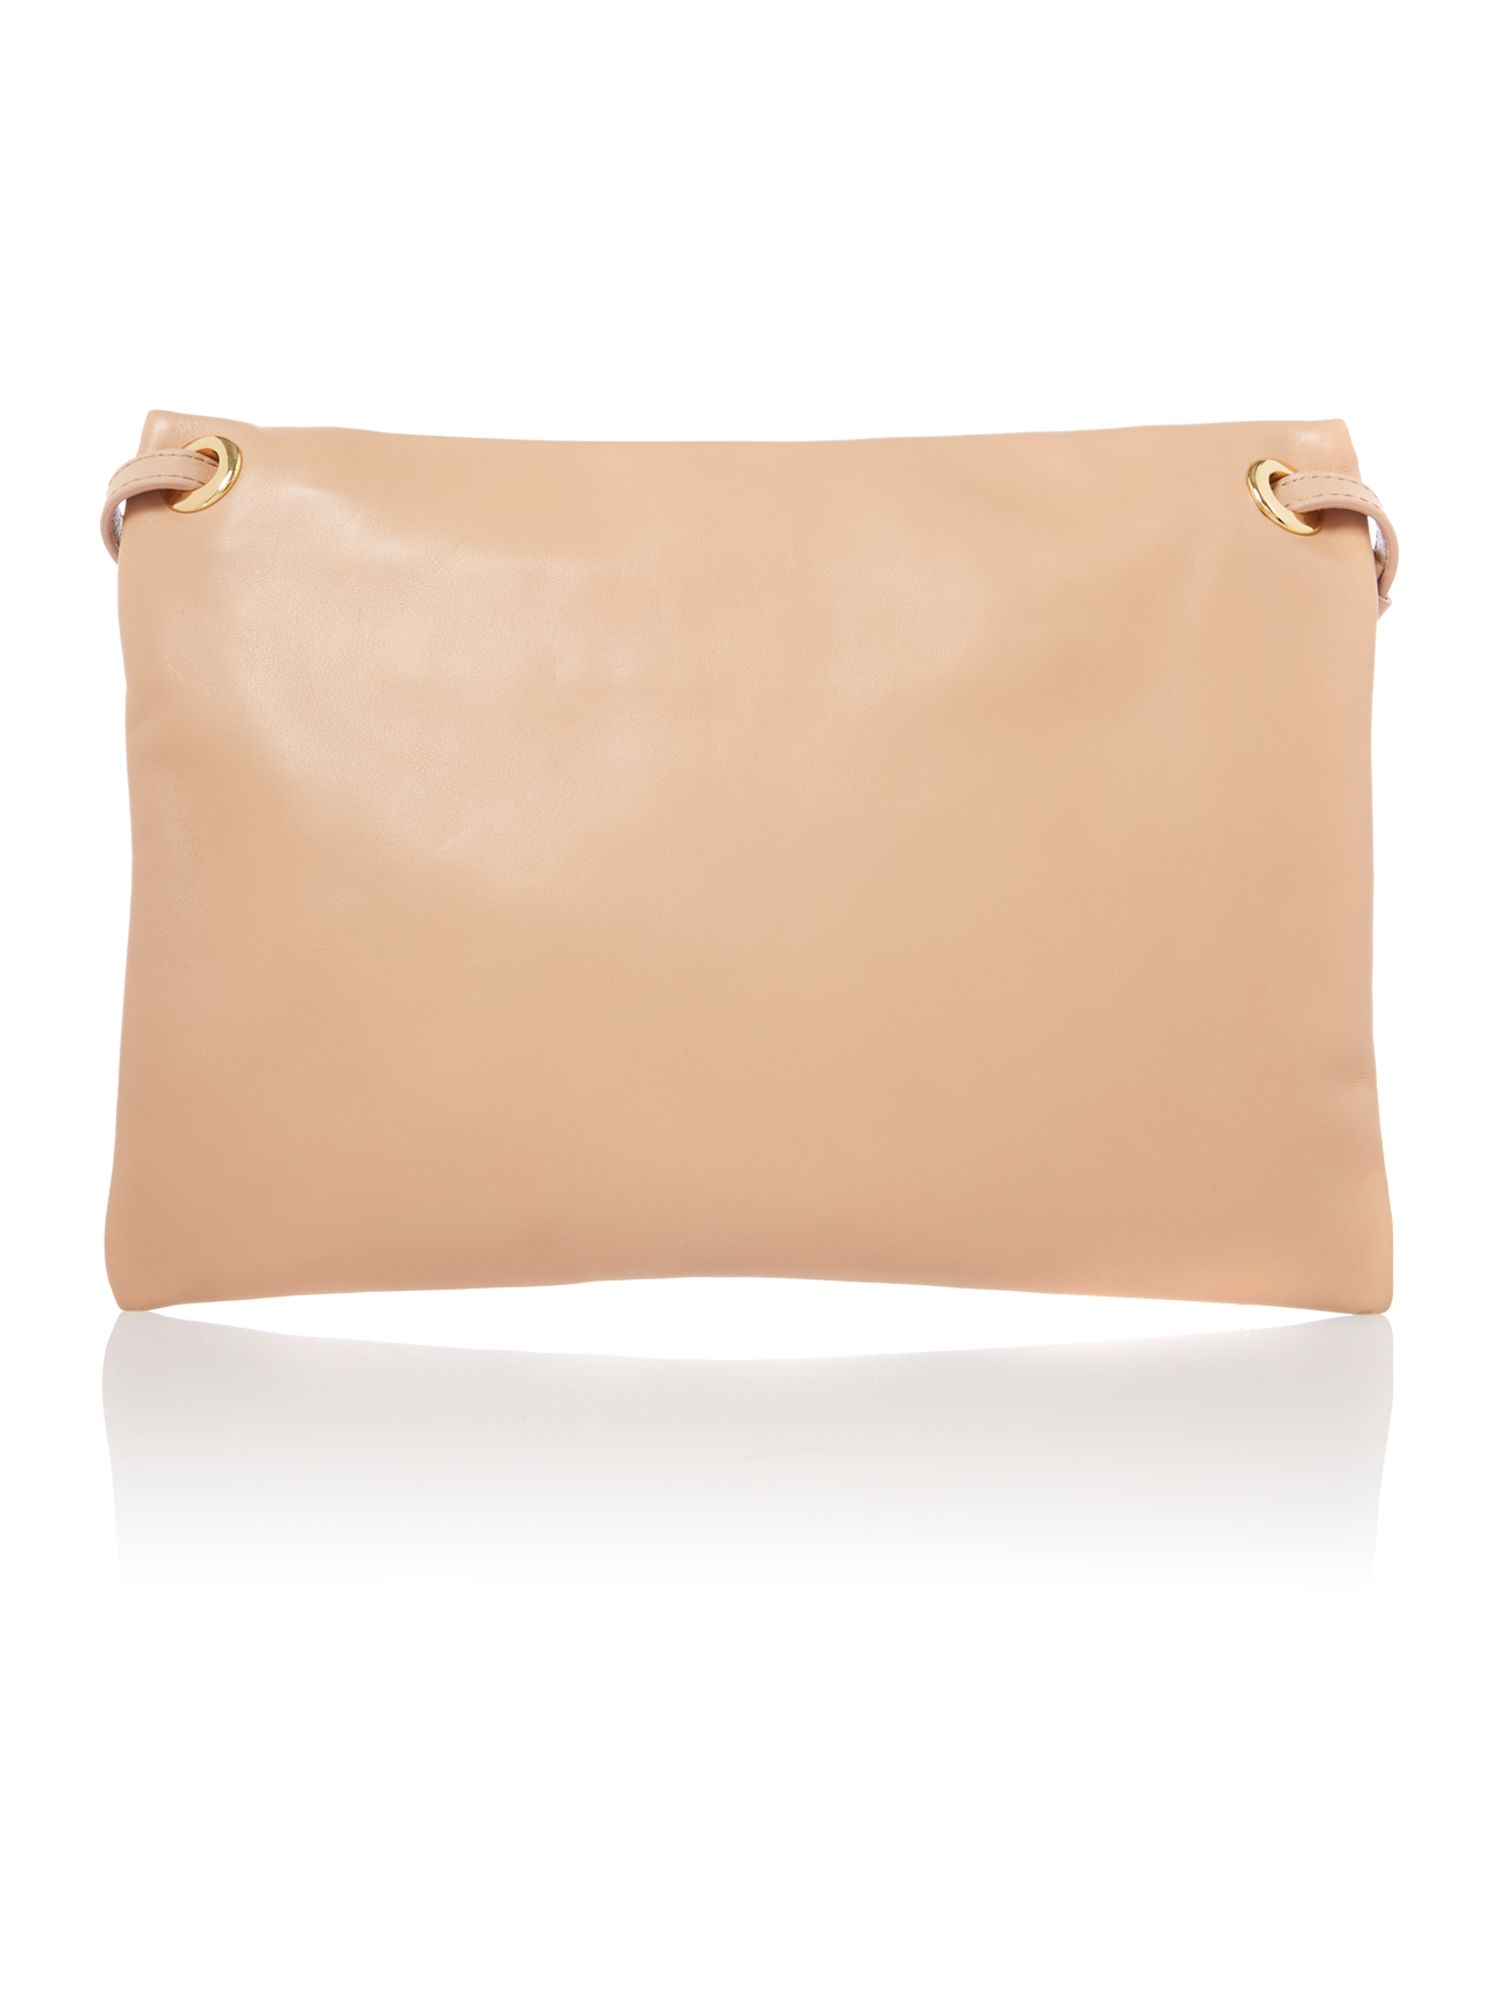 Swirl Highlight pink mini cross body bag